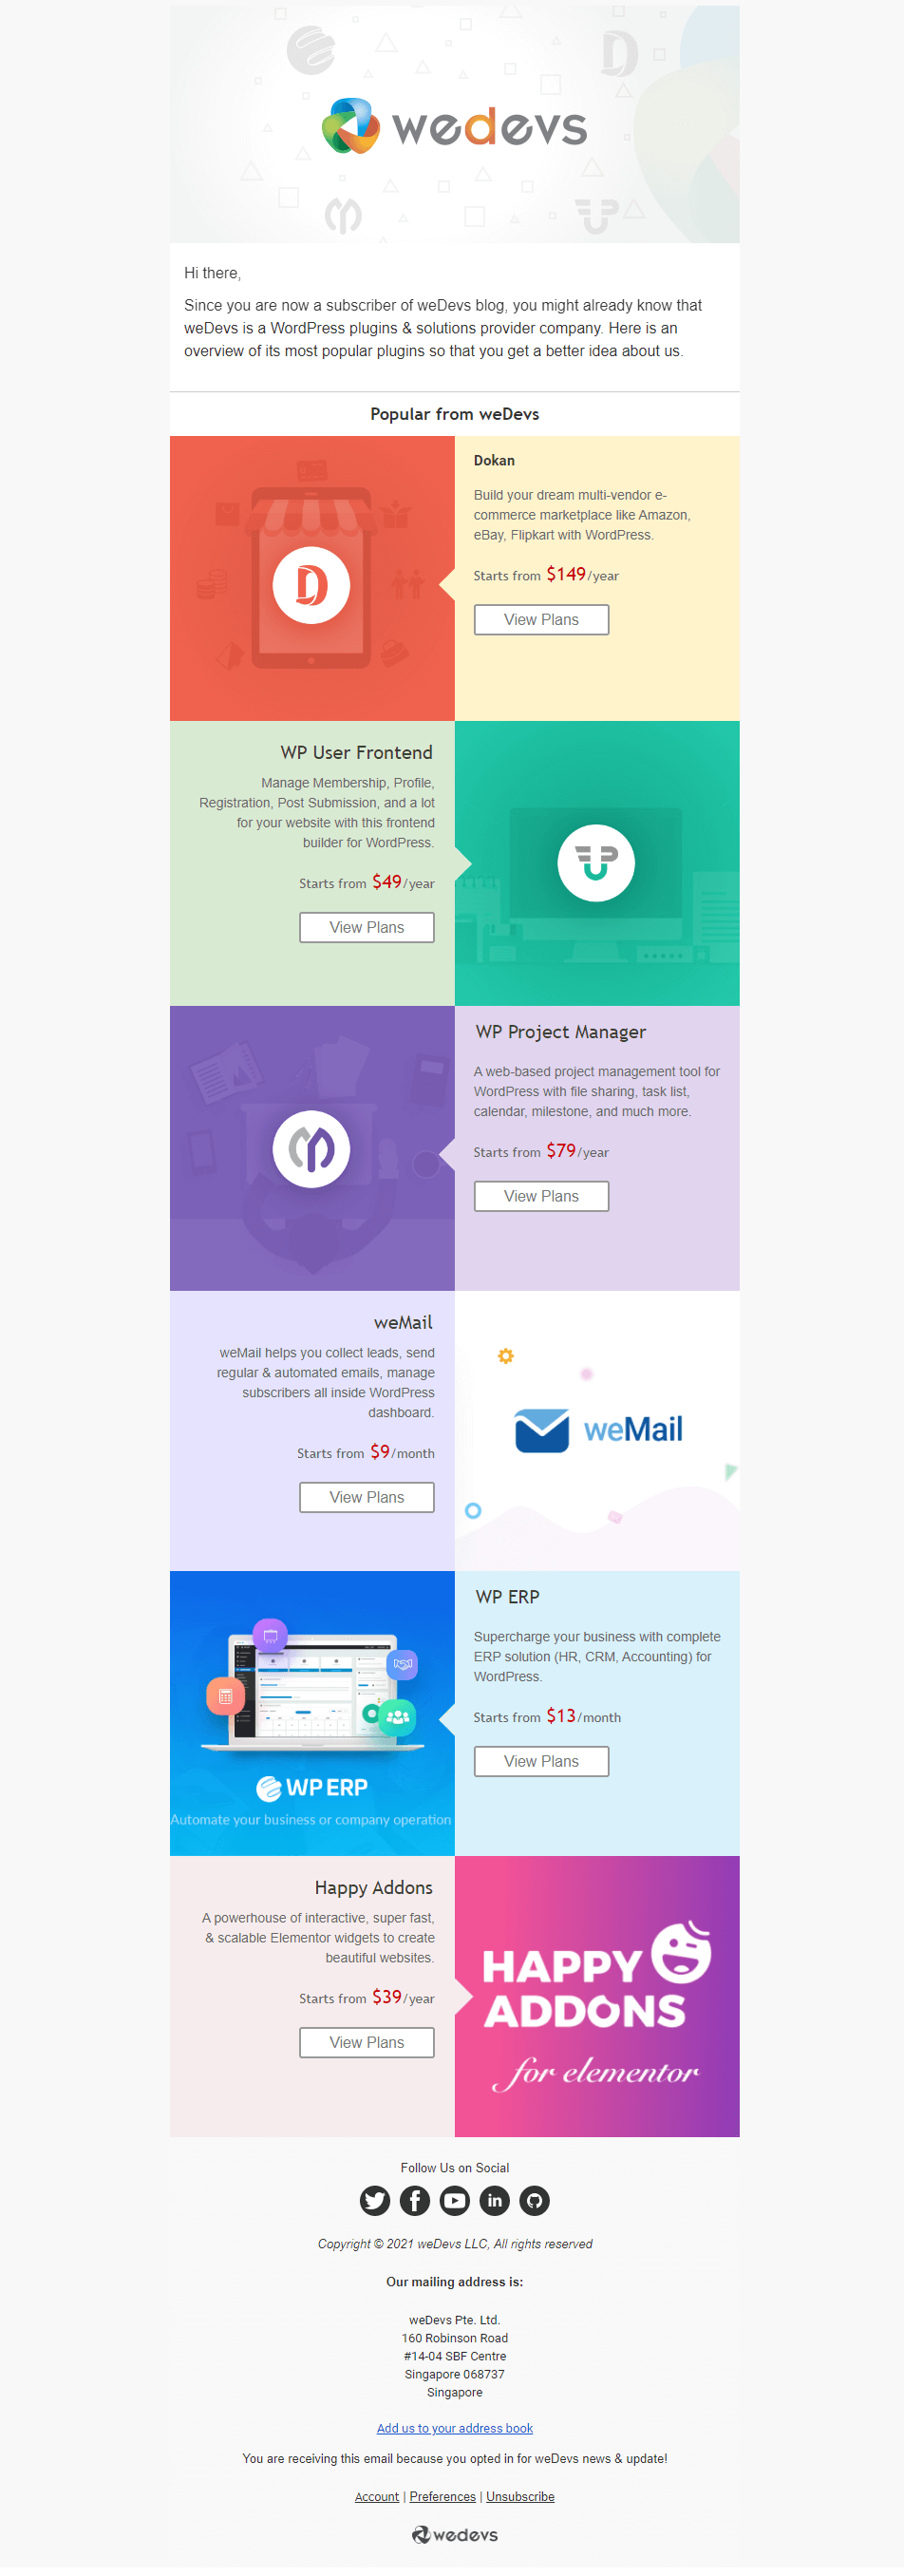 weDevs use email automation